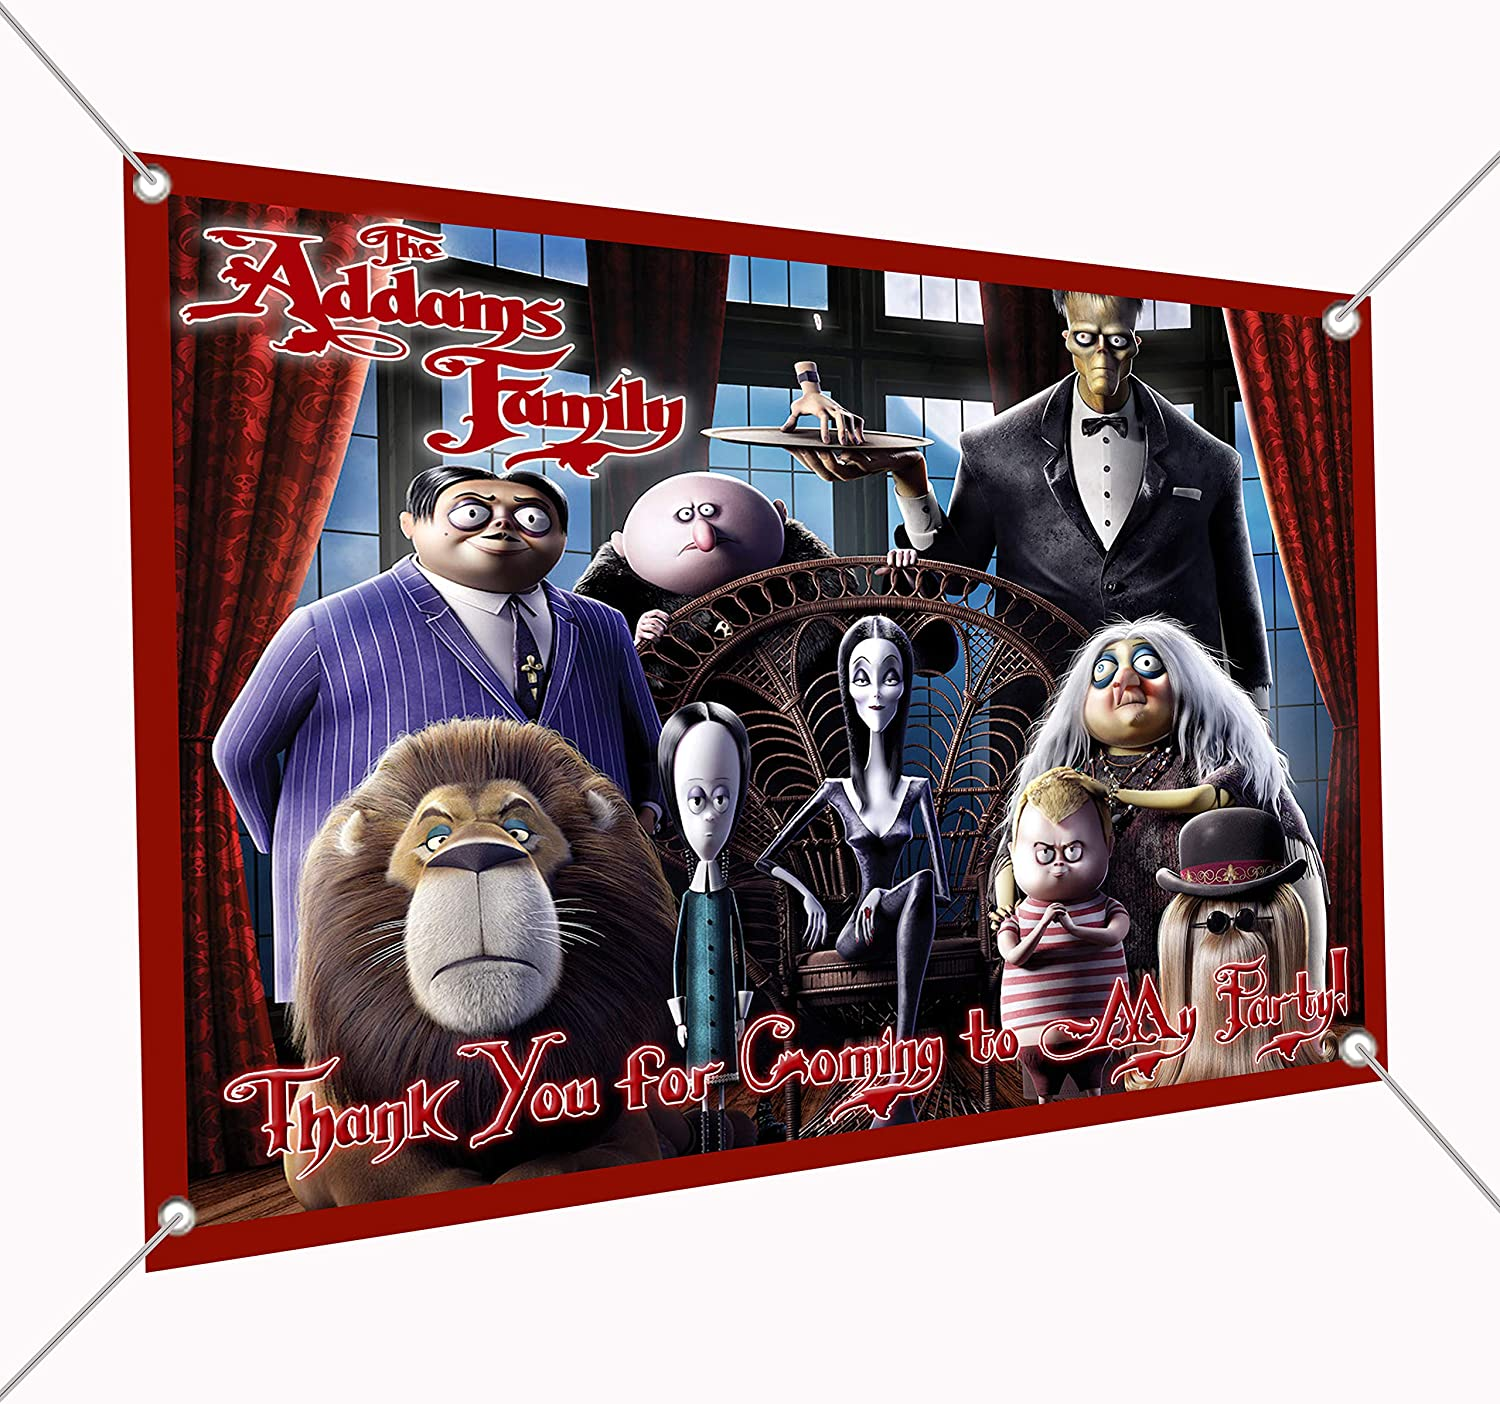 Addams Family Banner Large Vinyl or Tulsa Mall Indoor depot Sign P Outdoor